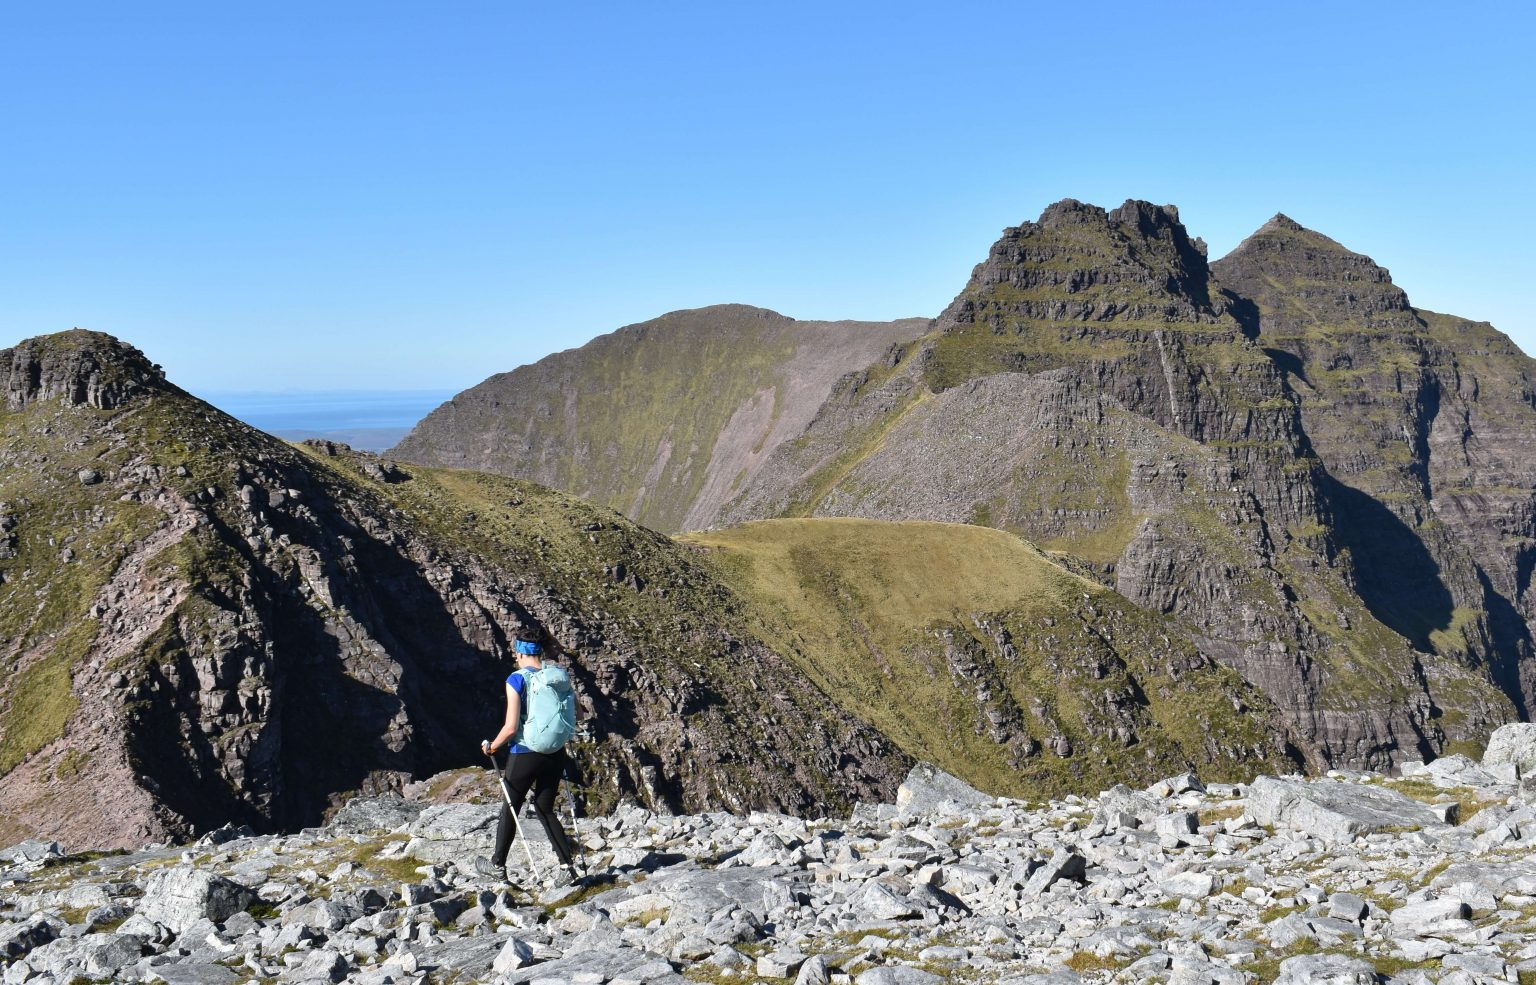 Adventurer Nic walking towards the pinnacles of An Teallach in North West Scotland